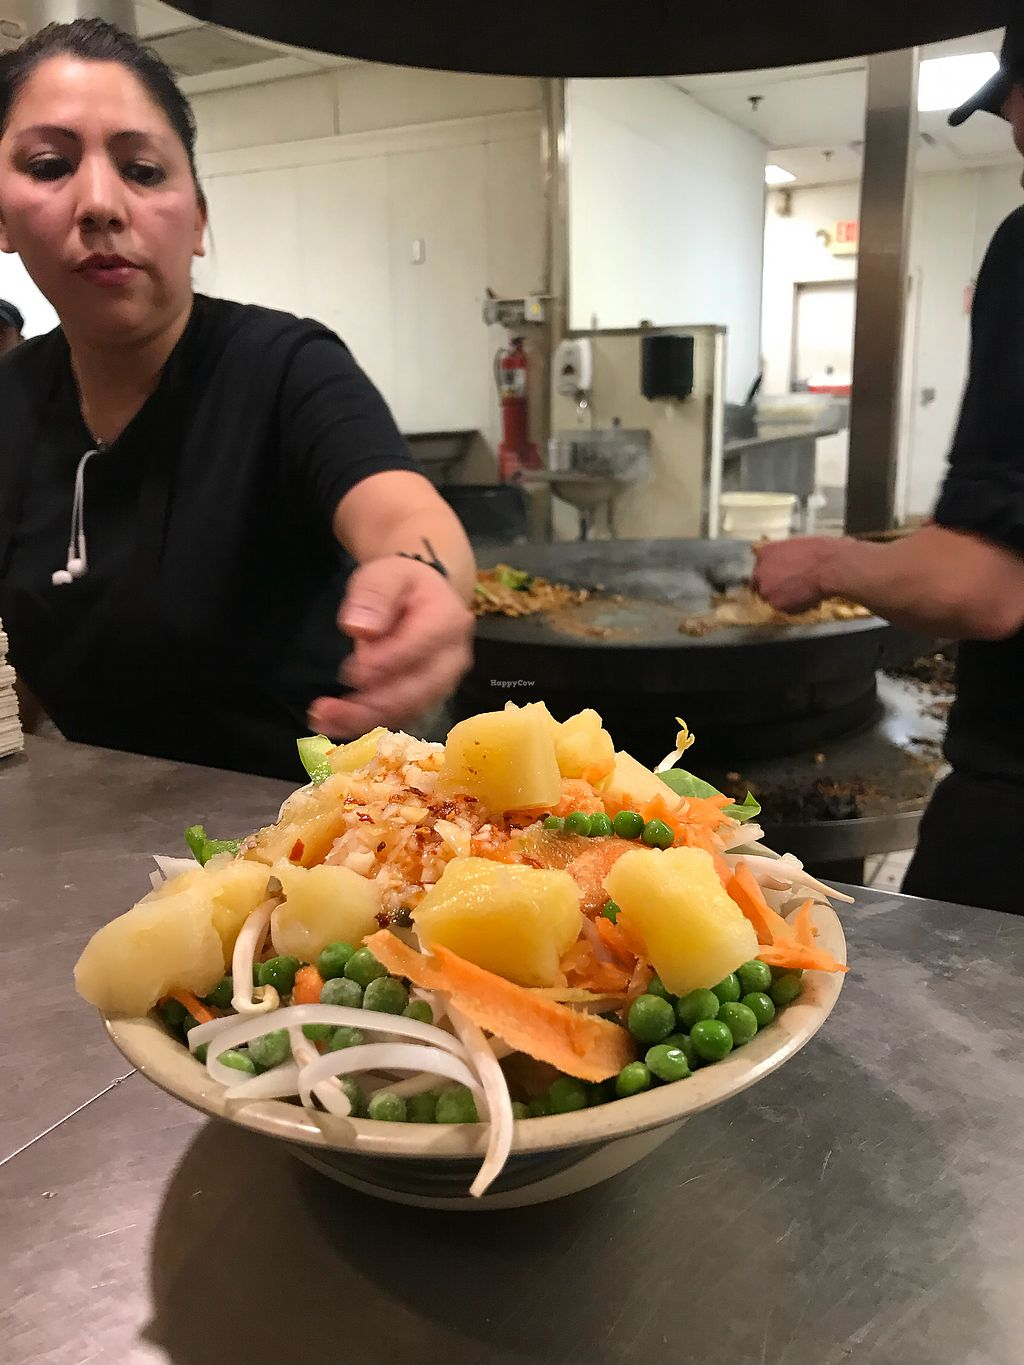 """Photo of Khan's Mongolian Barbecue  by <a href=""""/members/profile/KarenTatur"""">KarenTatur</a> <br/>Up for the grill <br/> February 11, 2018  - <a href='/contact/abuse/image/111708/358085'>Report</a>"""